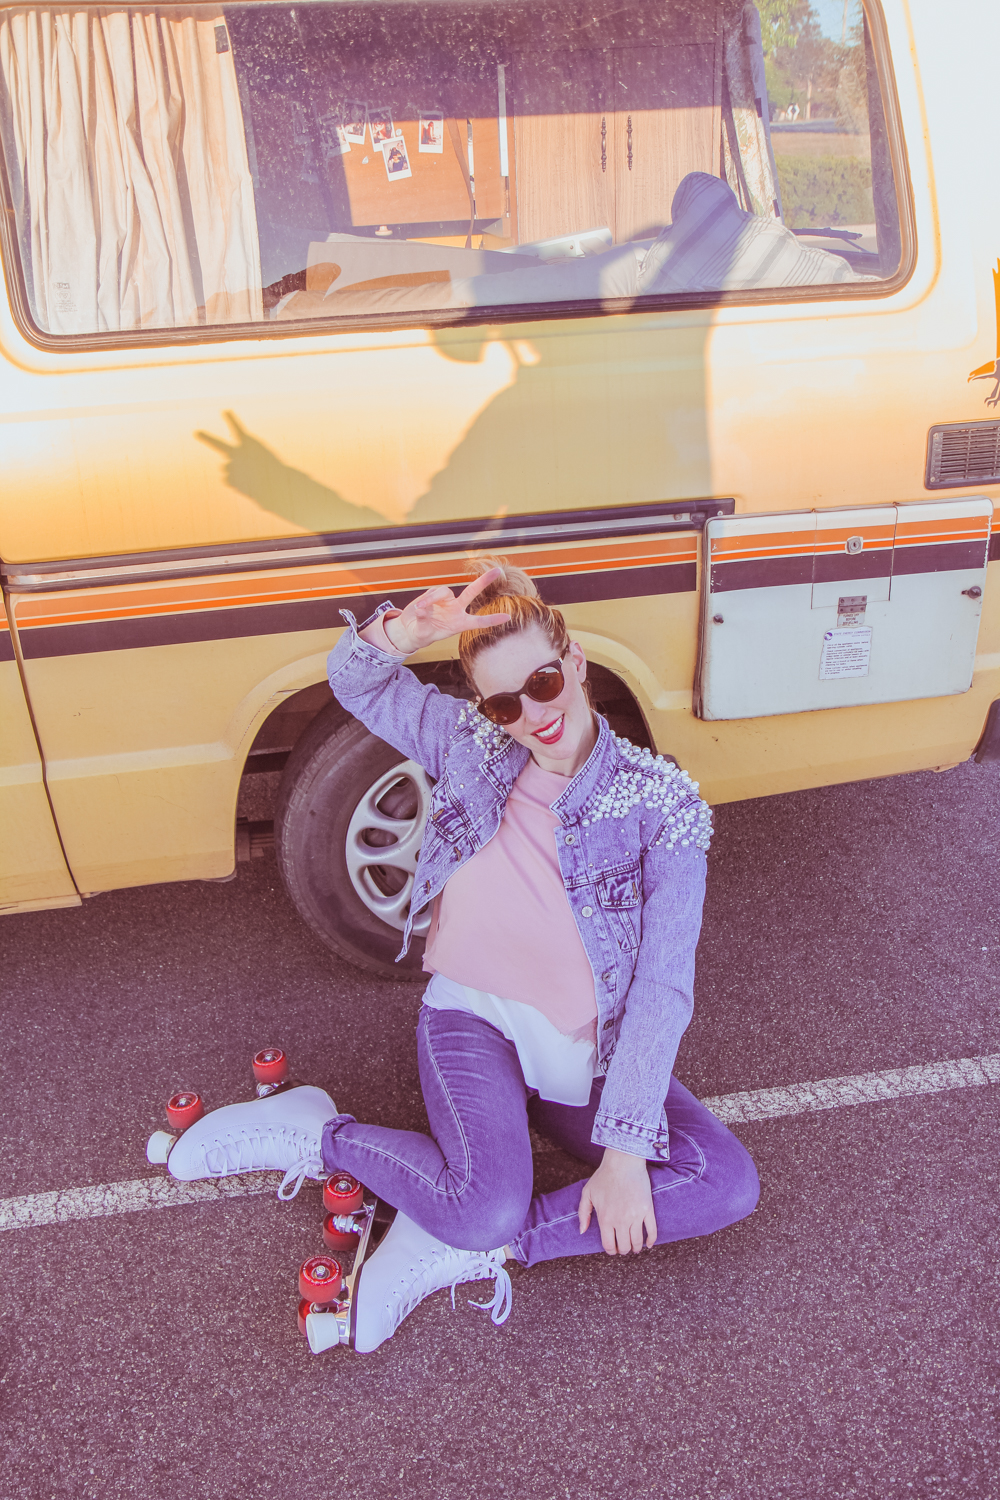 Goldfields Girl sits in front of my van with her rollerskates on. My shadow is on her in the bright sun.